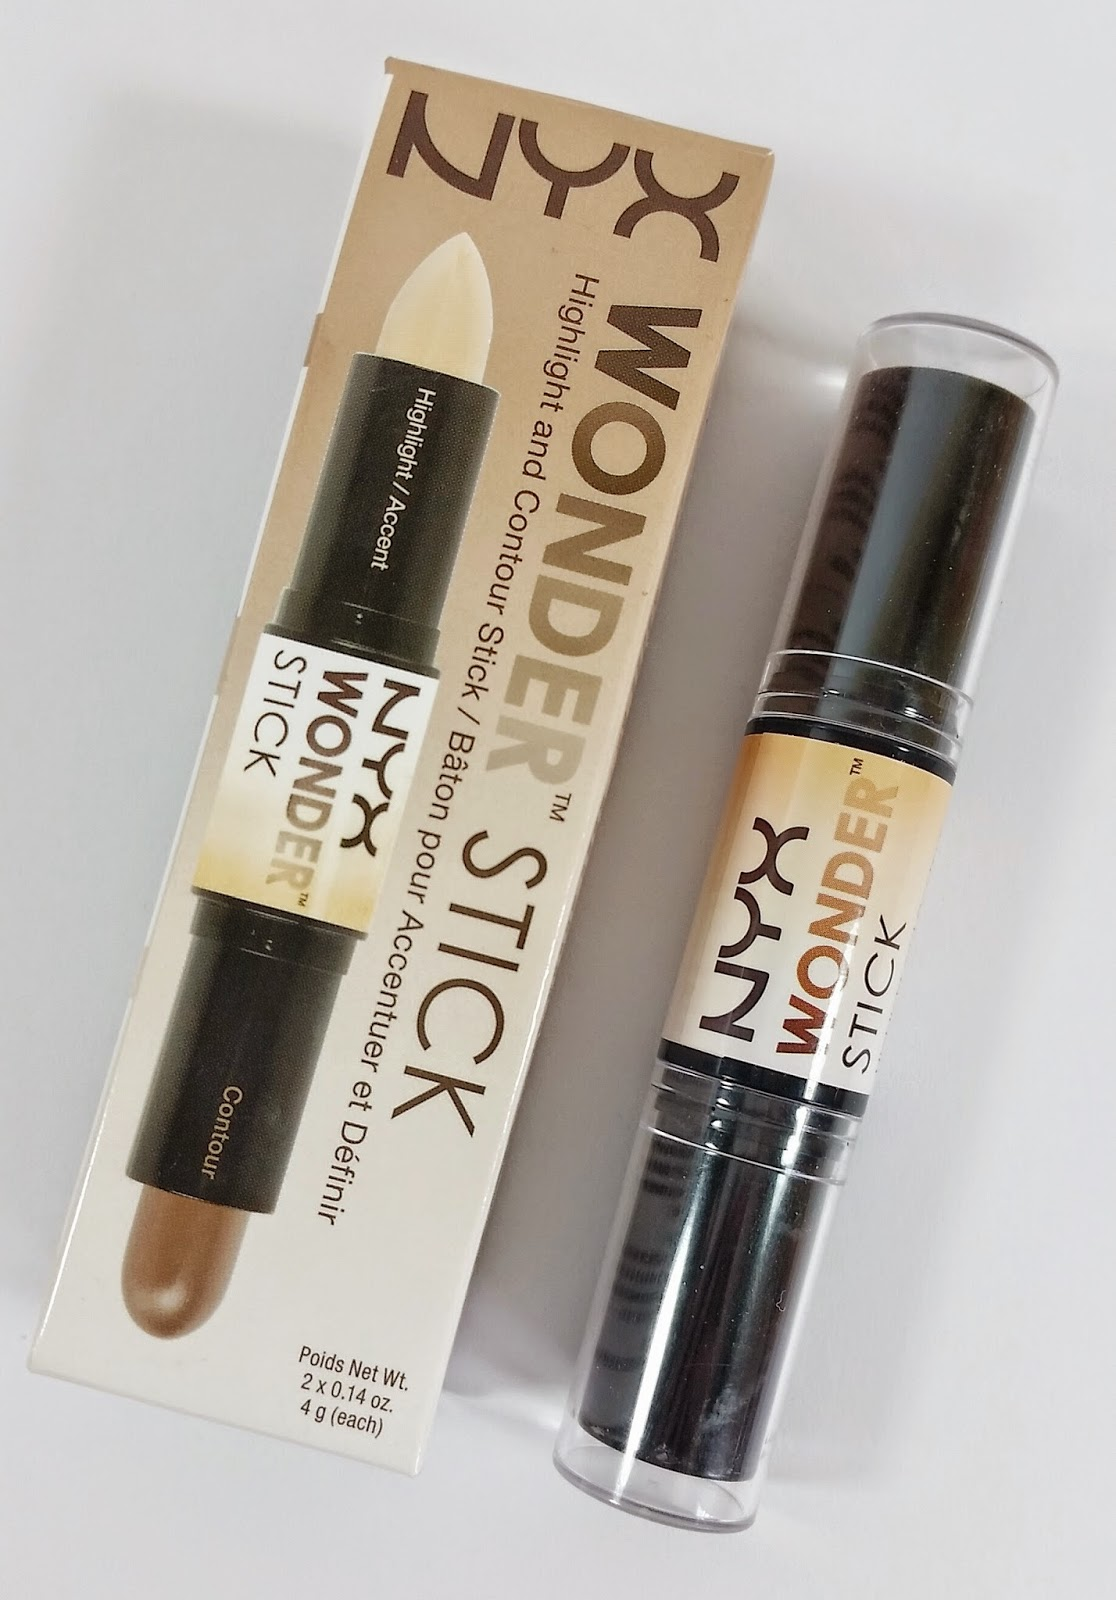 Nyx Wonder Stick Review And Swatches The Budget Beauty Blog Concealer